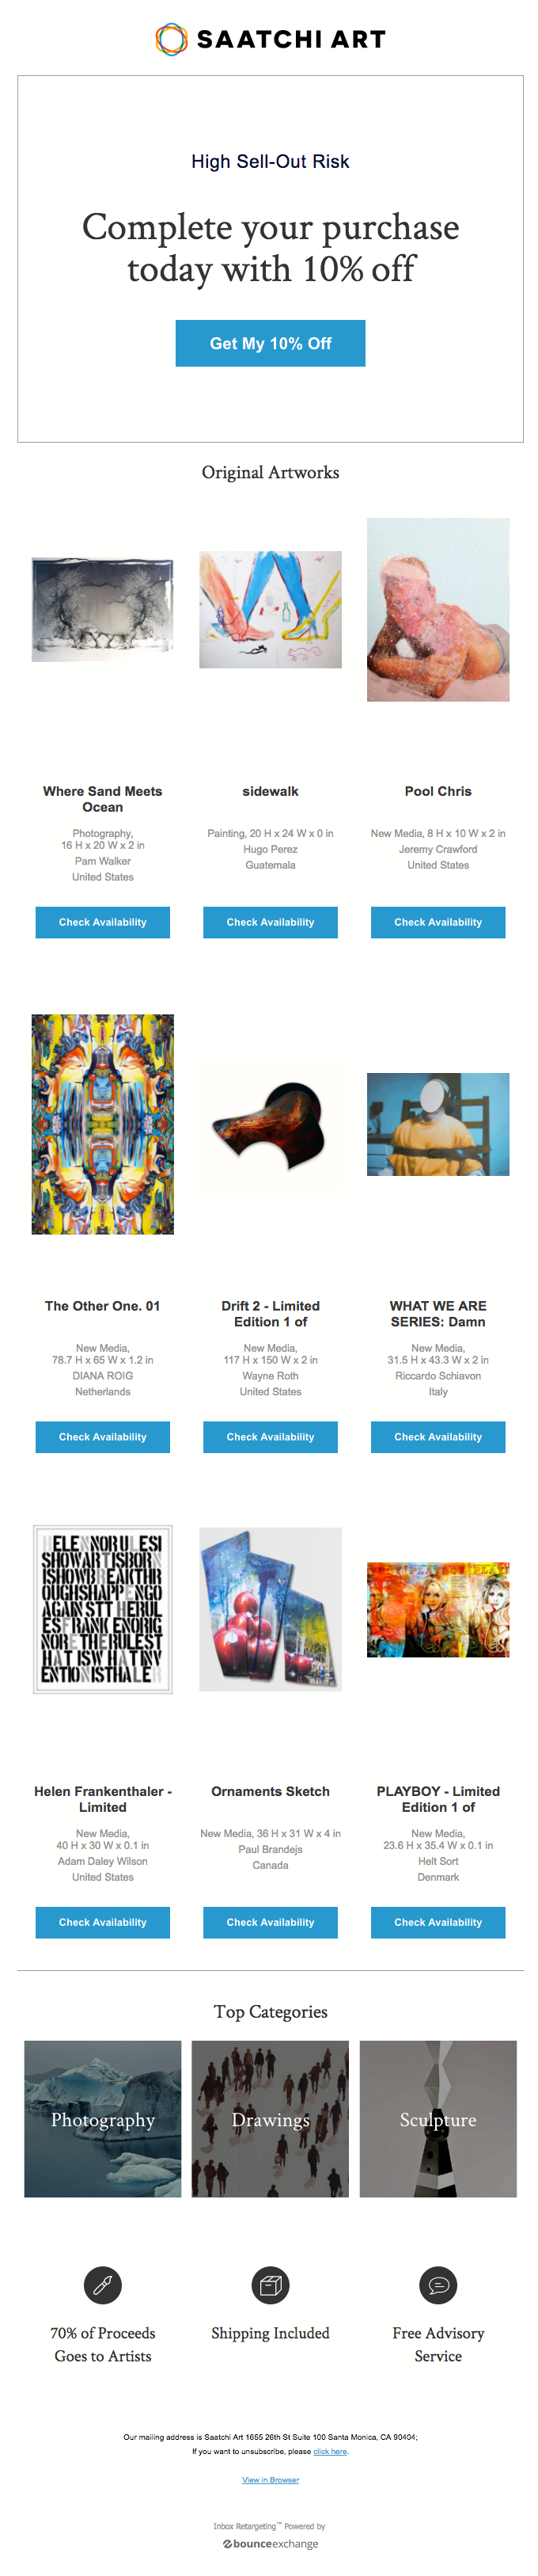 "saatchi art email with headline ""complete your purchase today with 10% off"" abandoned cart email"